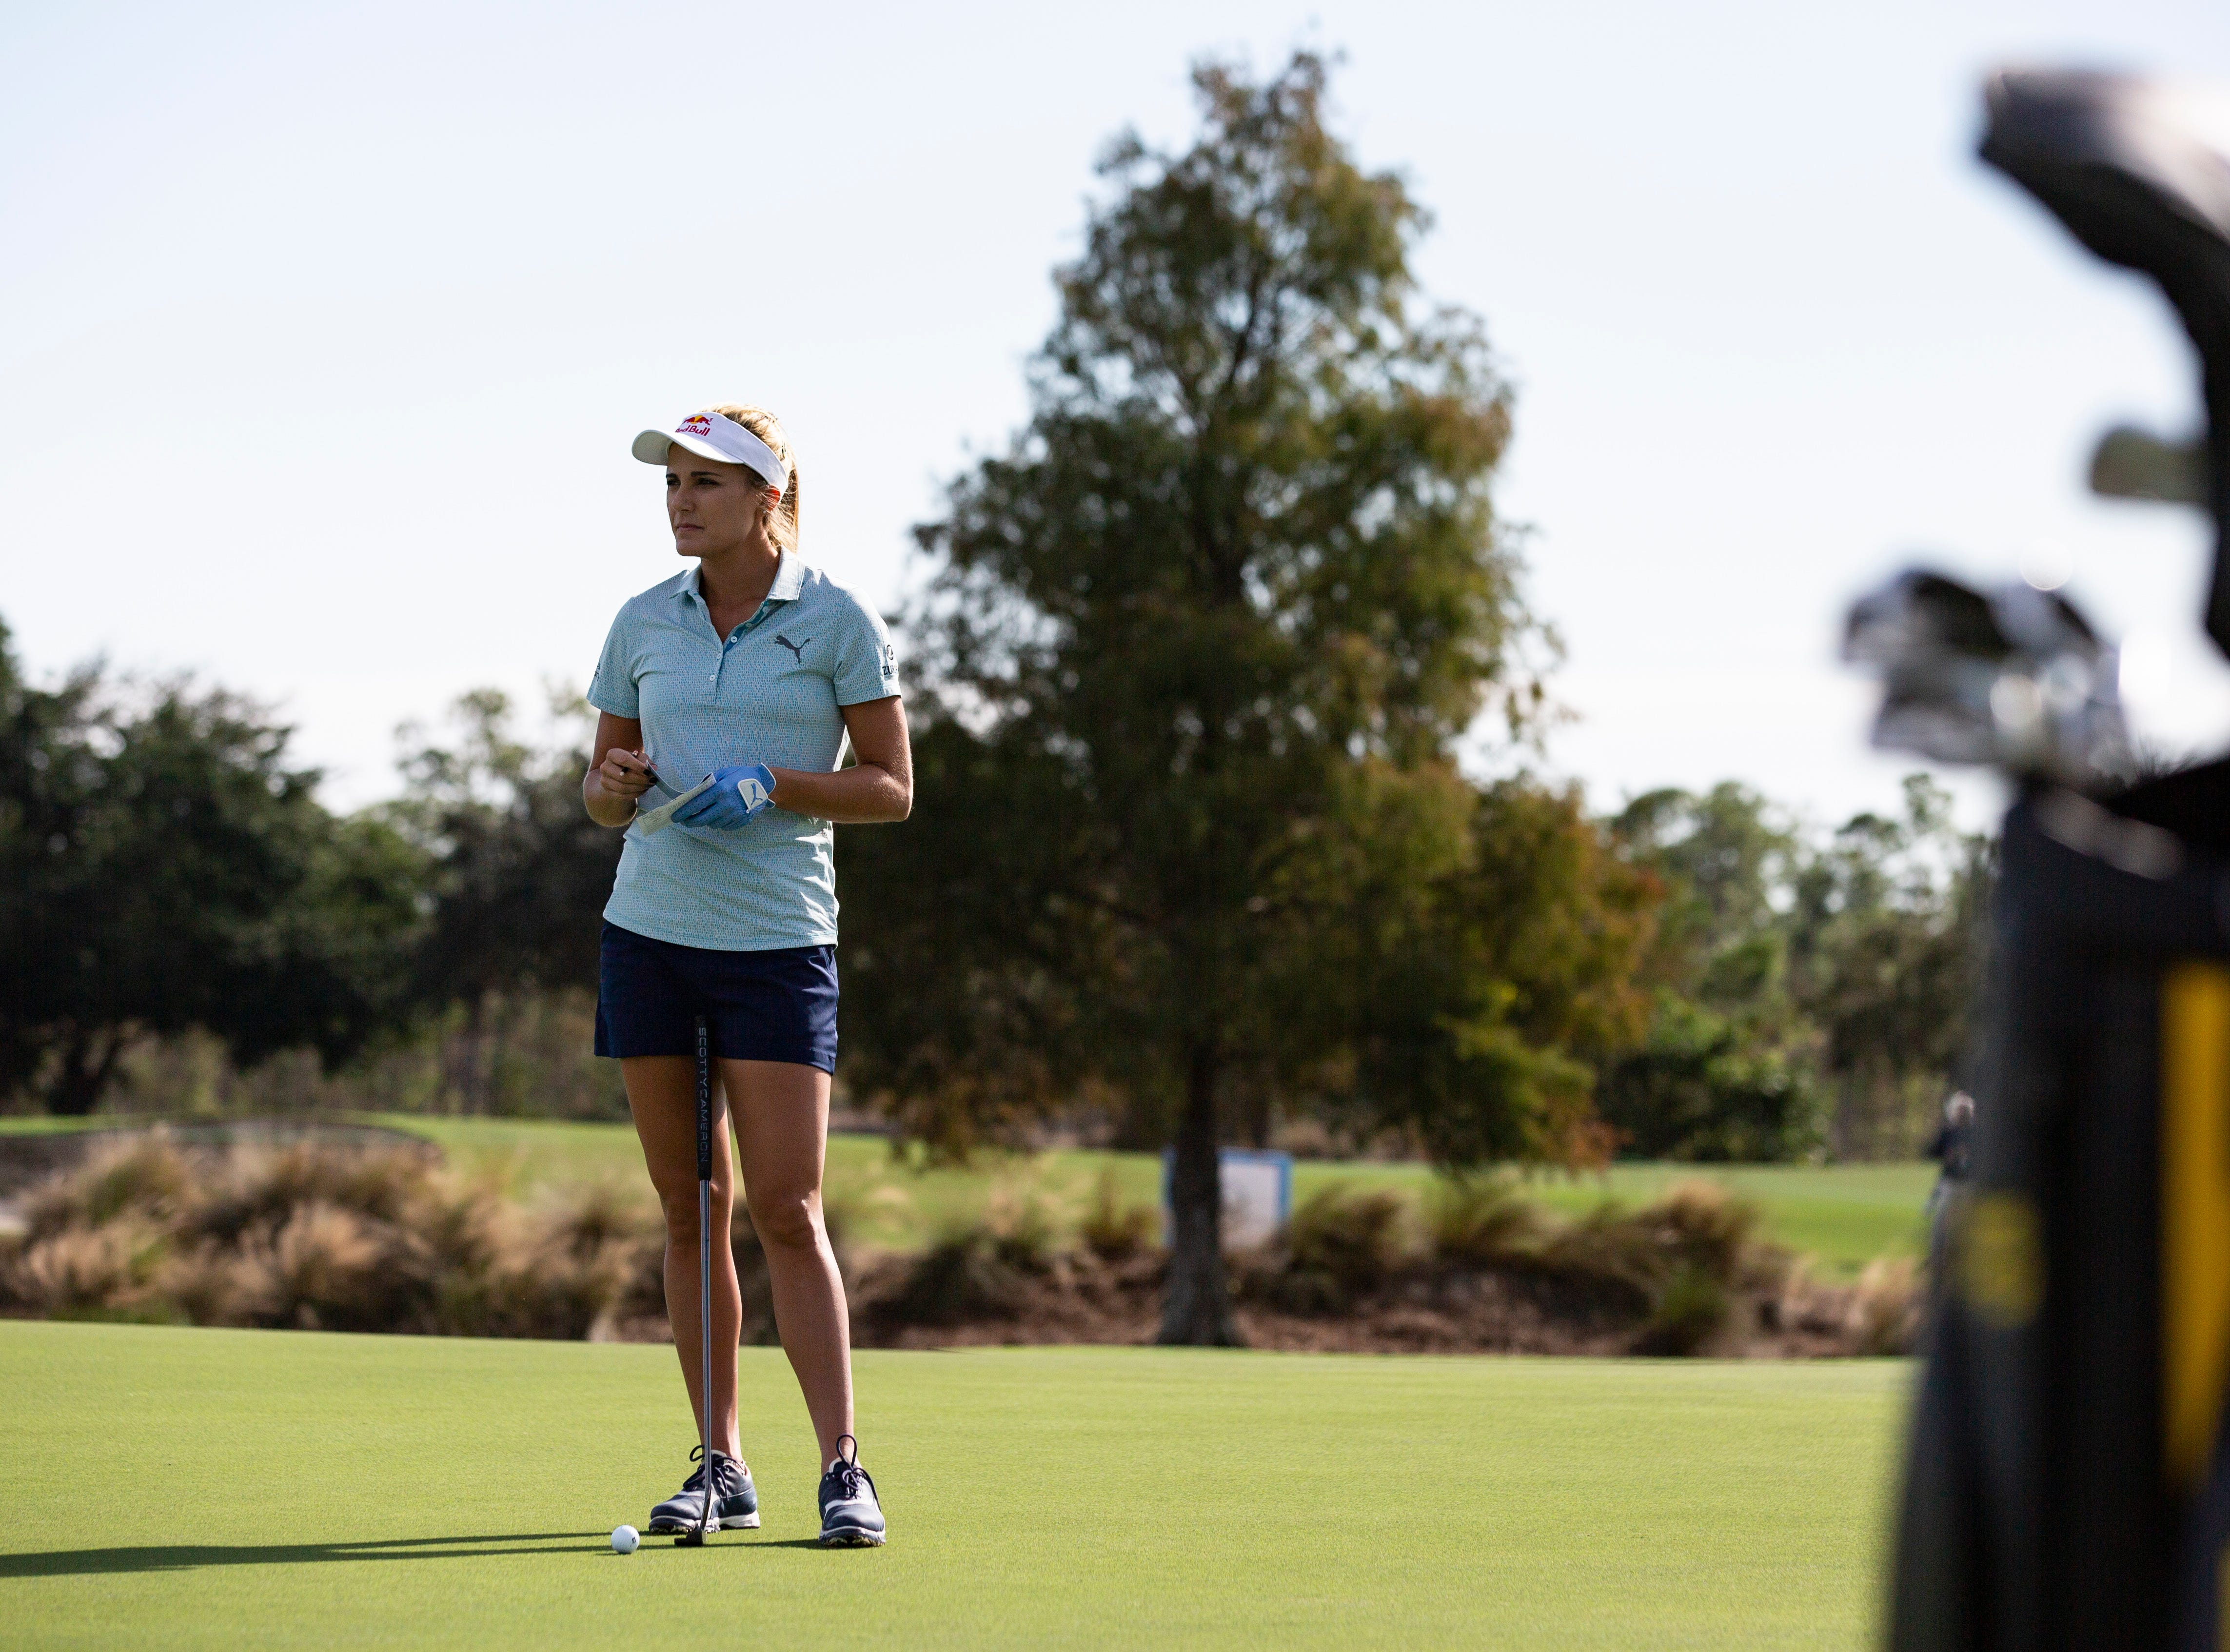 Lexi Thompson of Florida, contemplates her swing in reference to the yardage book  during the first Pro- Amateur round of the 30th annual QBE Shootout at Tiburón Golf Club on Wednesday, Dec. 5, 2018.